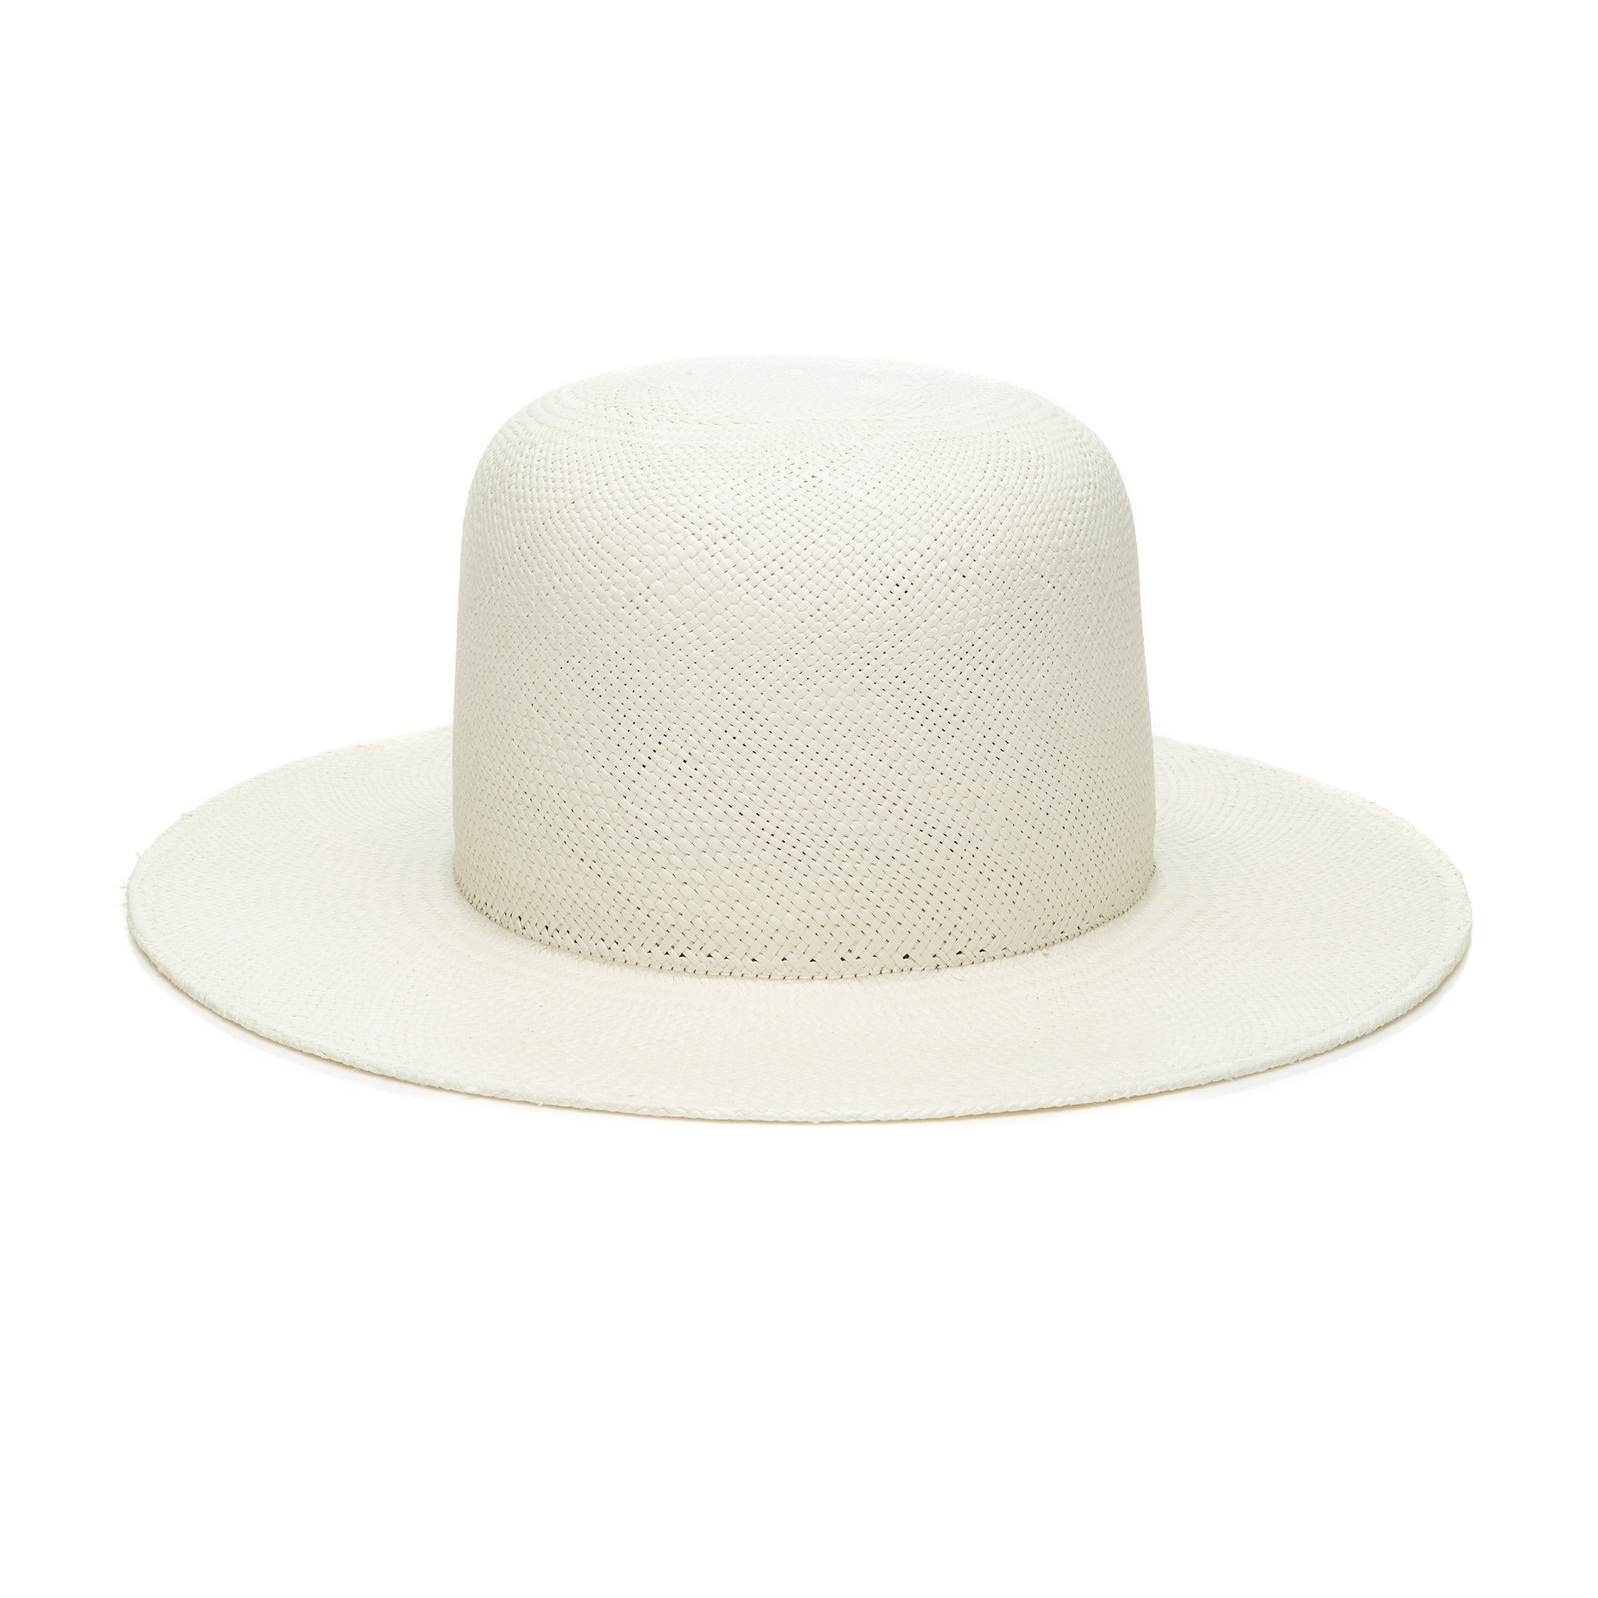 large_janessa-leone-white-alice-straw-hat.jpg